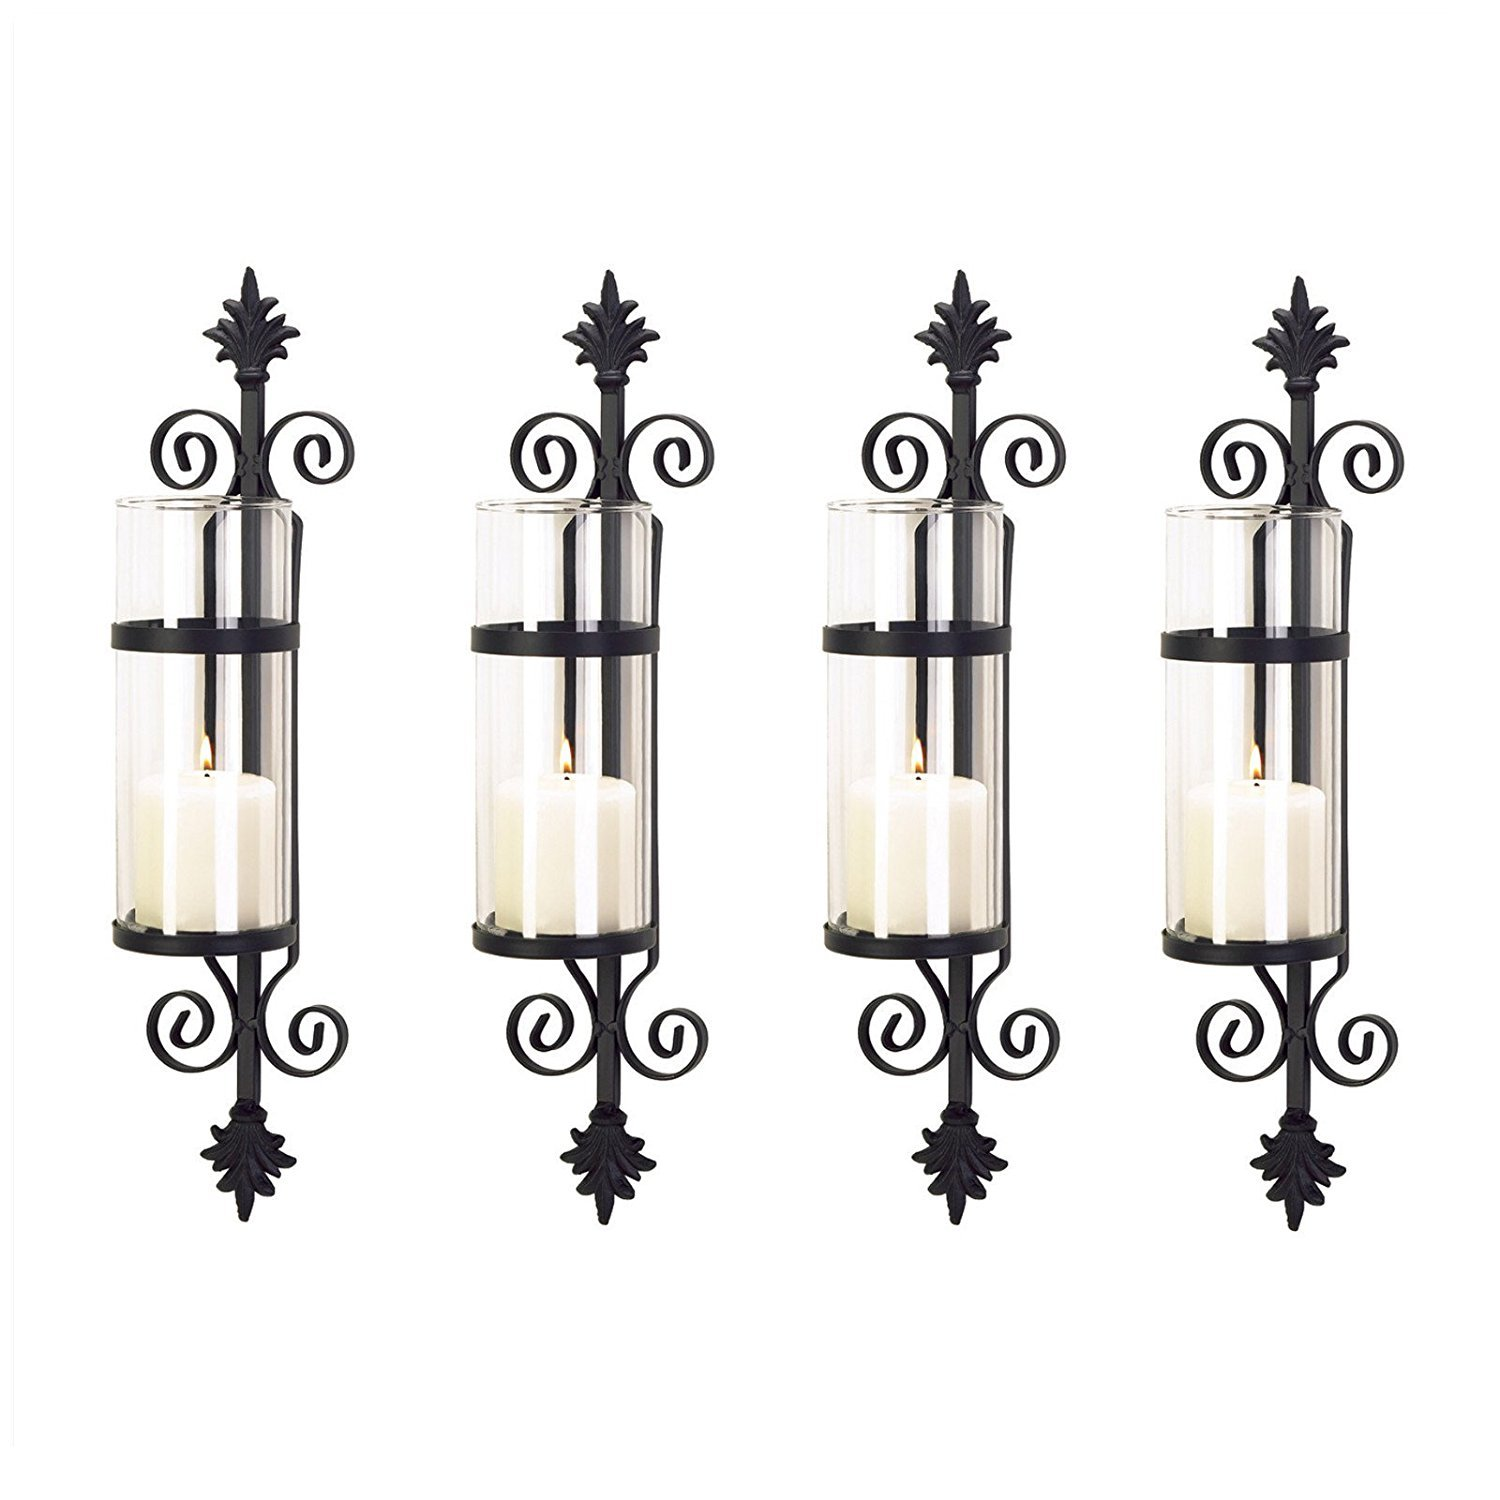 4 Ornate Scroll Fleur De Les Pillar Wall Sconces Candle Holders SET